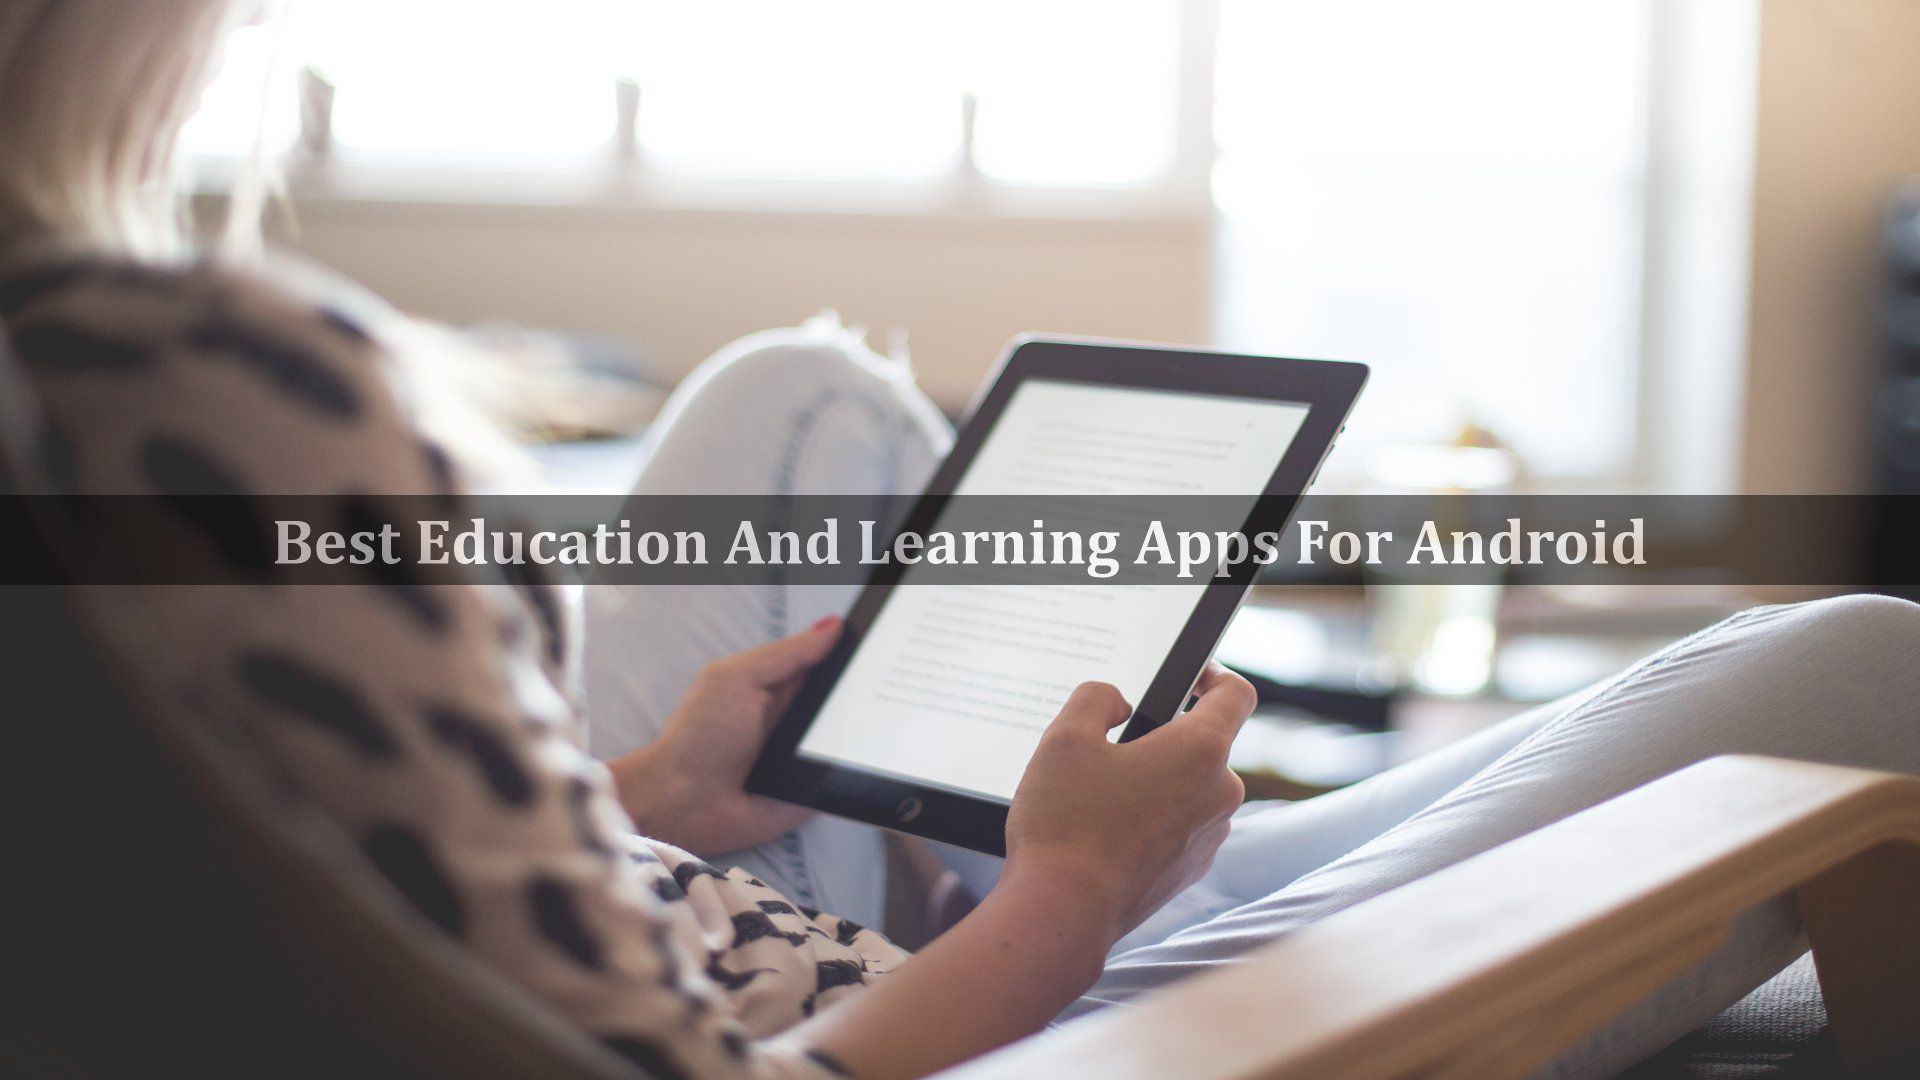 Education And Learning Apps For Android